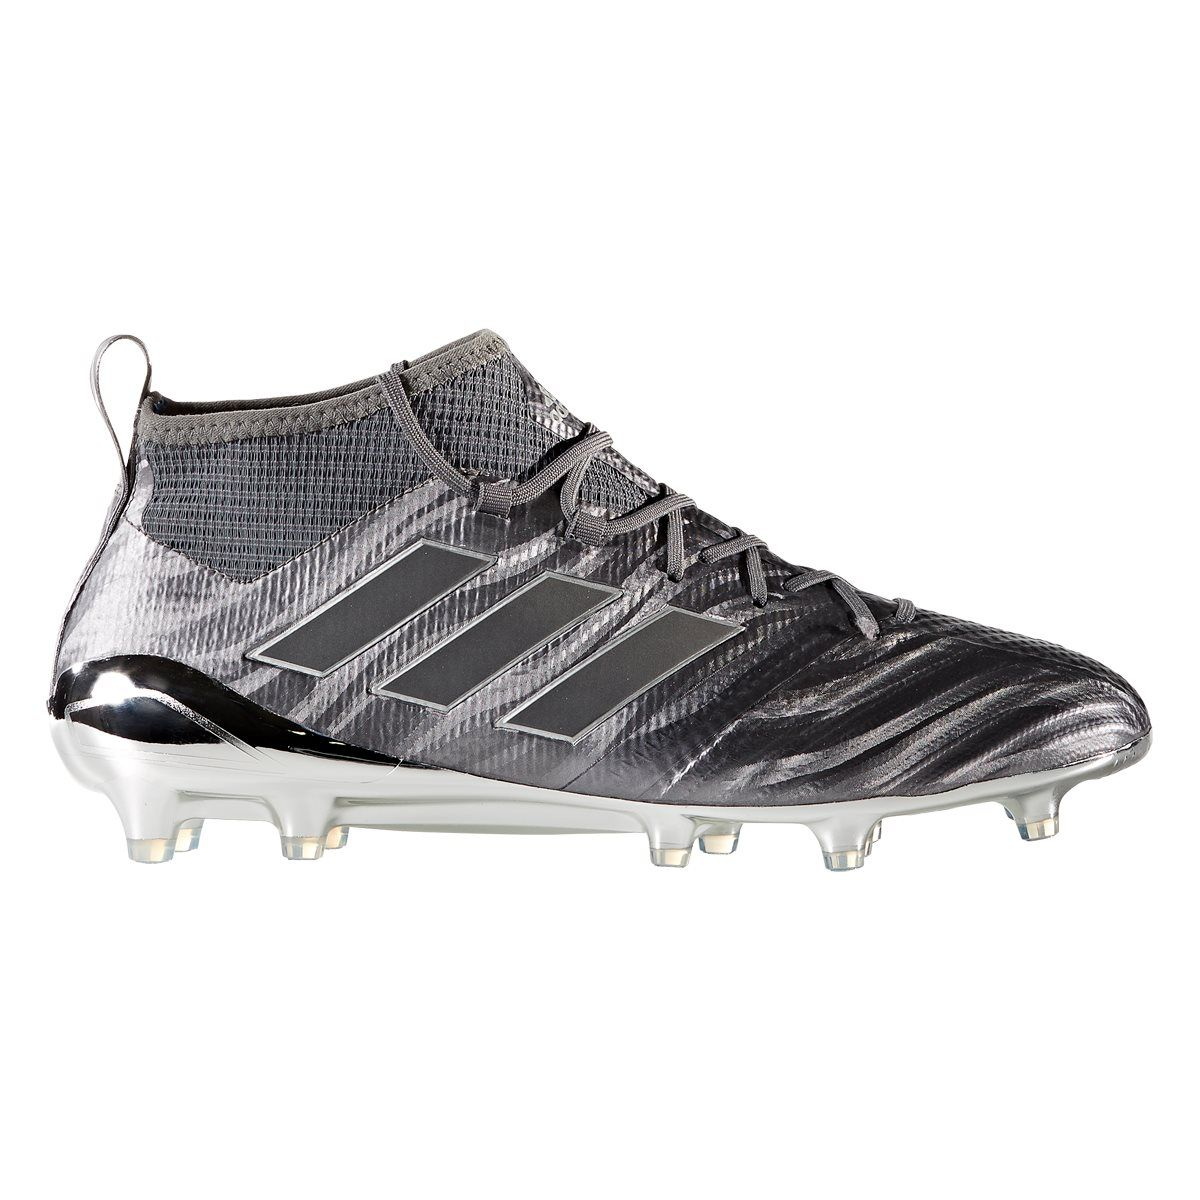 big sale 70c83 9e4f2 adidas ACE 17.1 FG Soccer Cleat- Magnetic Control Limited ...